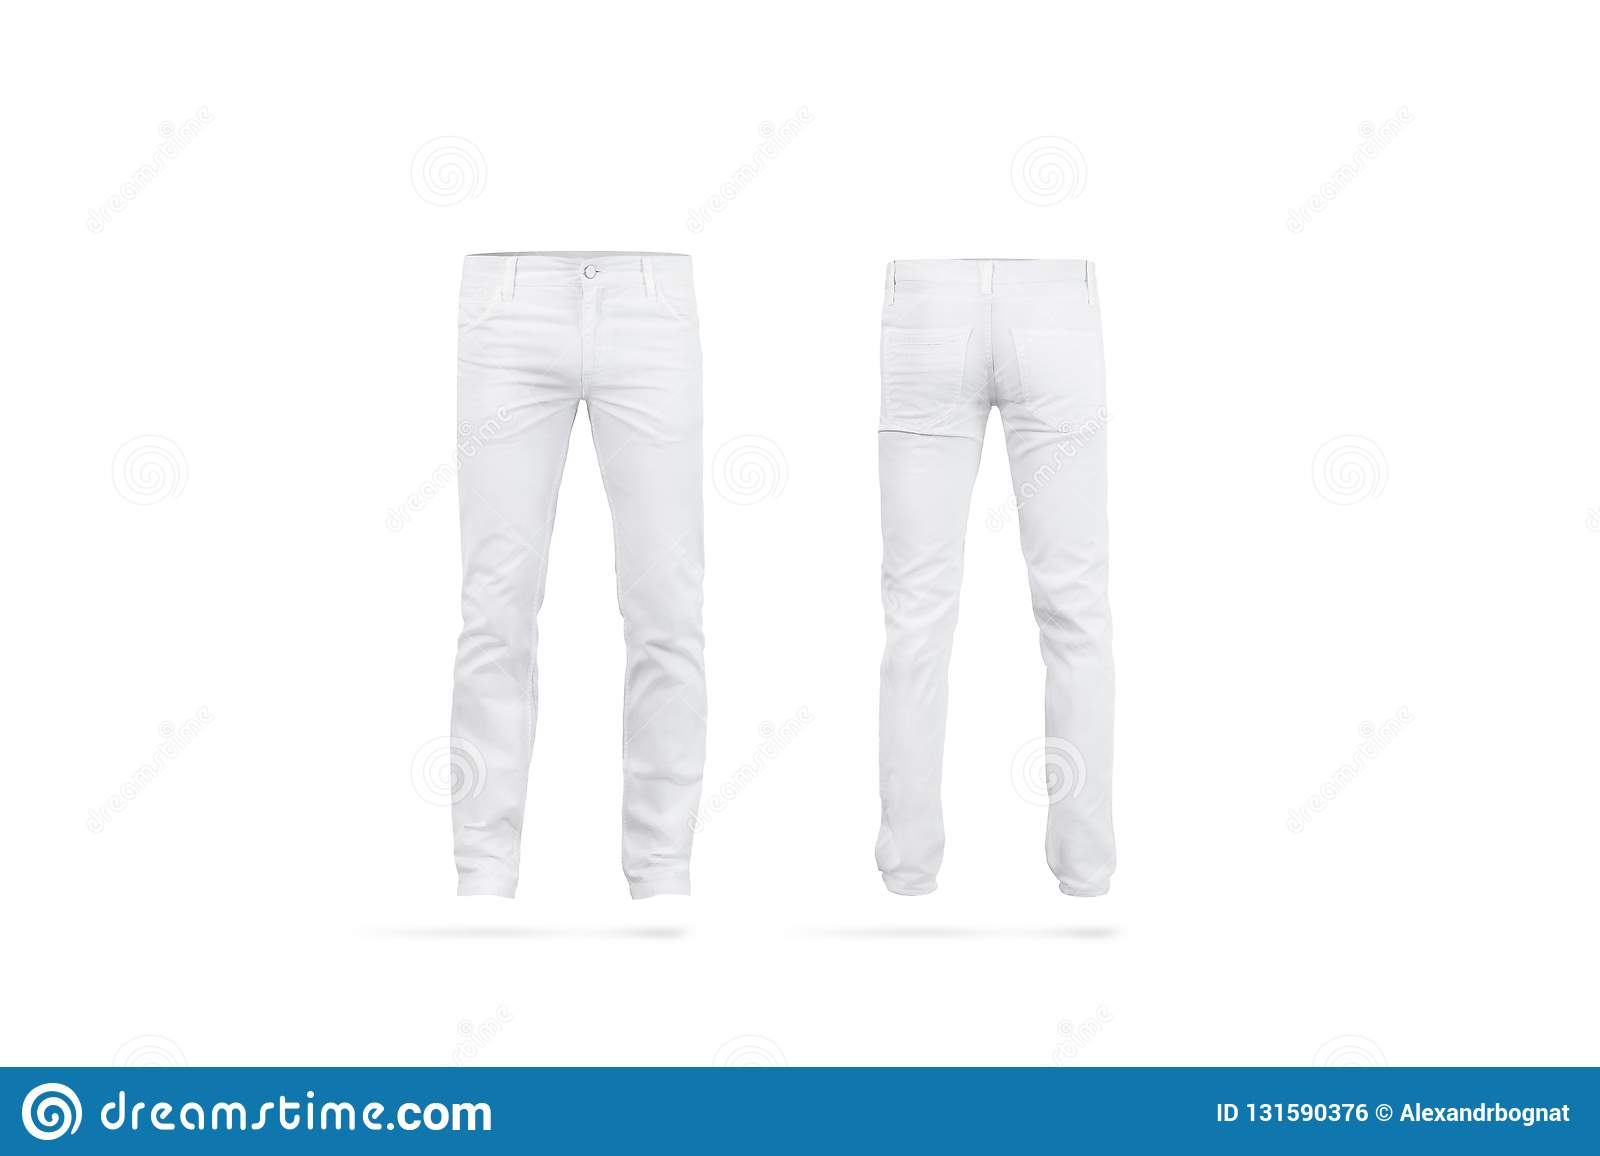 fe59d0bf42ad Blank white mens pants mock up, isolated, front and back side view. Empty  classic male trousers mockup. Clear denim clothing for work template.